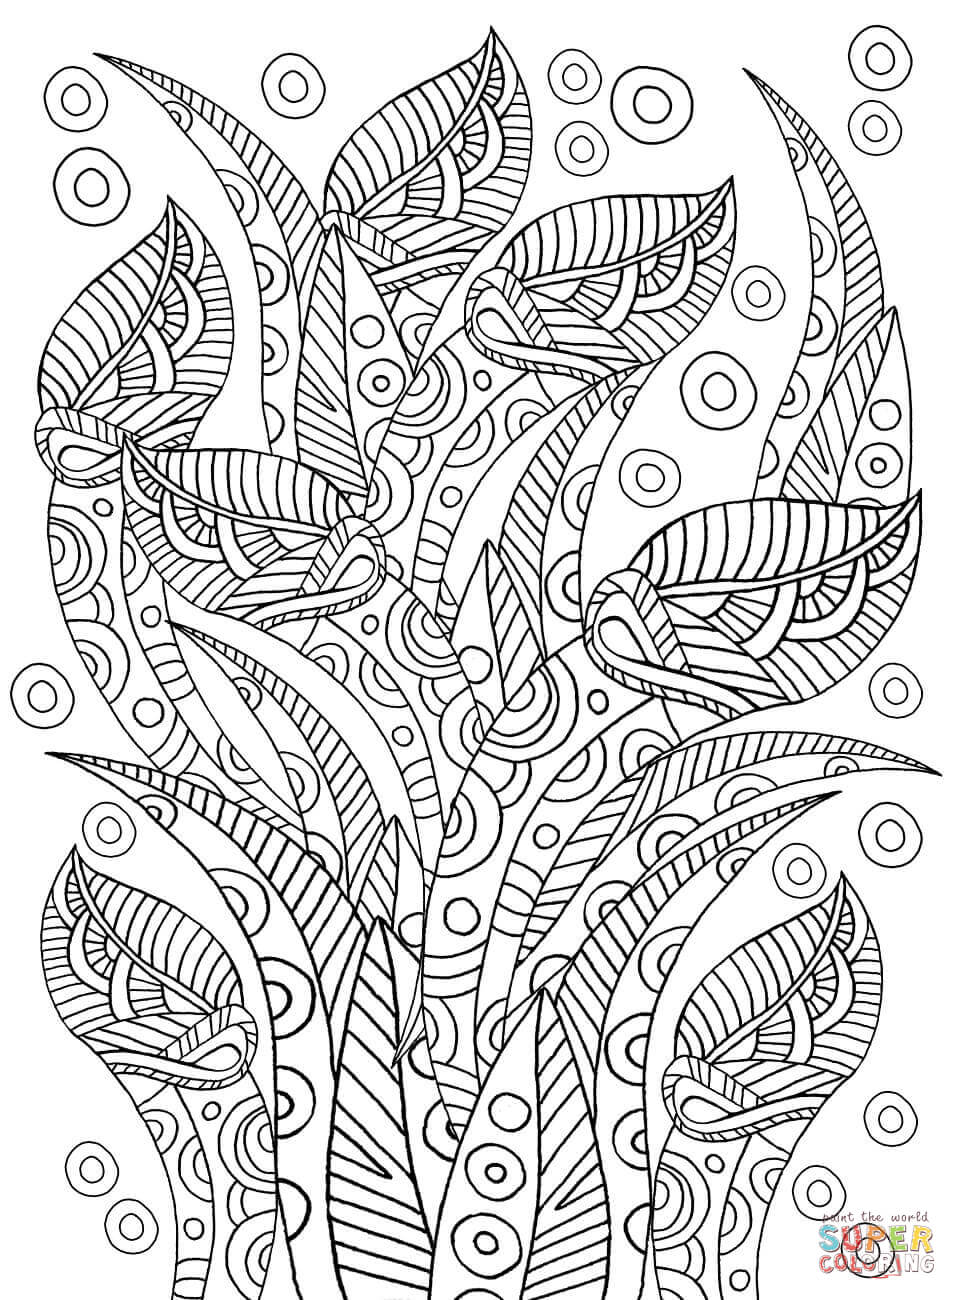 printable pattern coloring pages free printable geometric coloring pages for kids printable coloring pattern pages